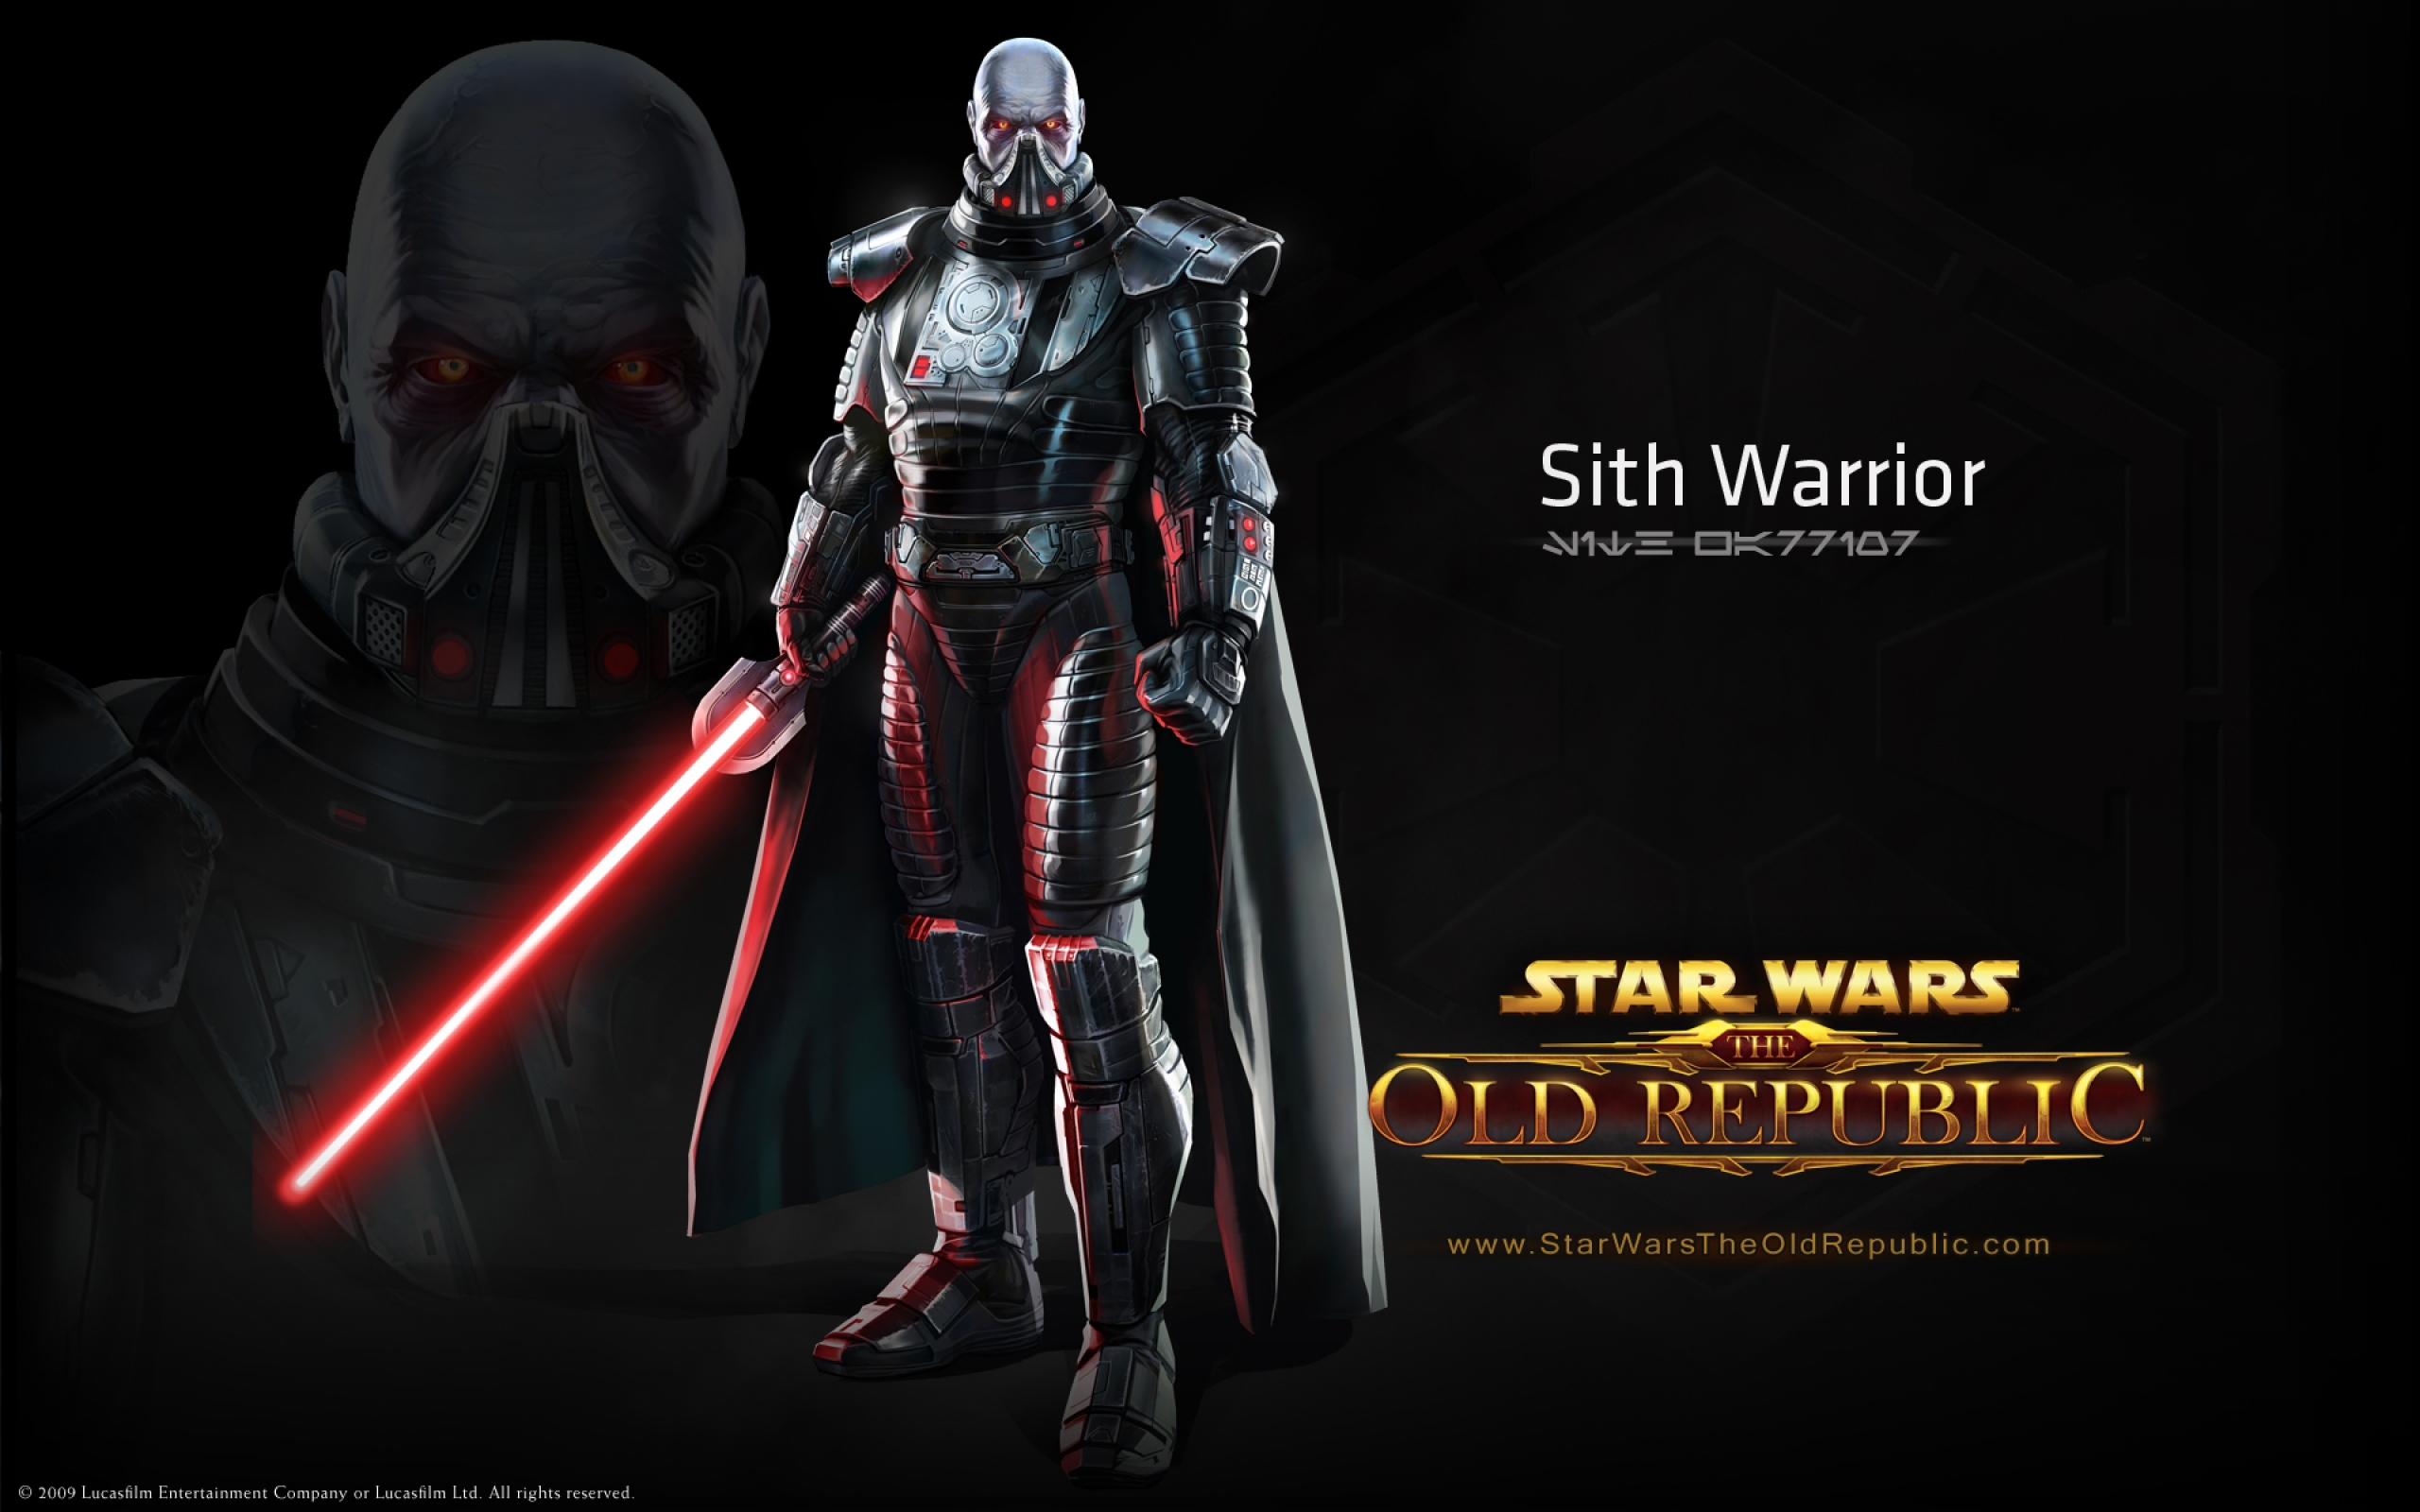 Sith Warrior Swtor Hd Wallpaper Background Image 2560x1600 Id 567983 Wallpaper Abyss